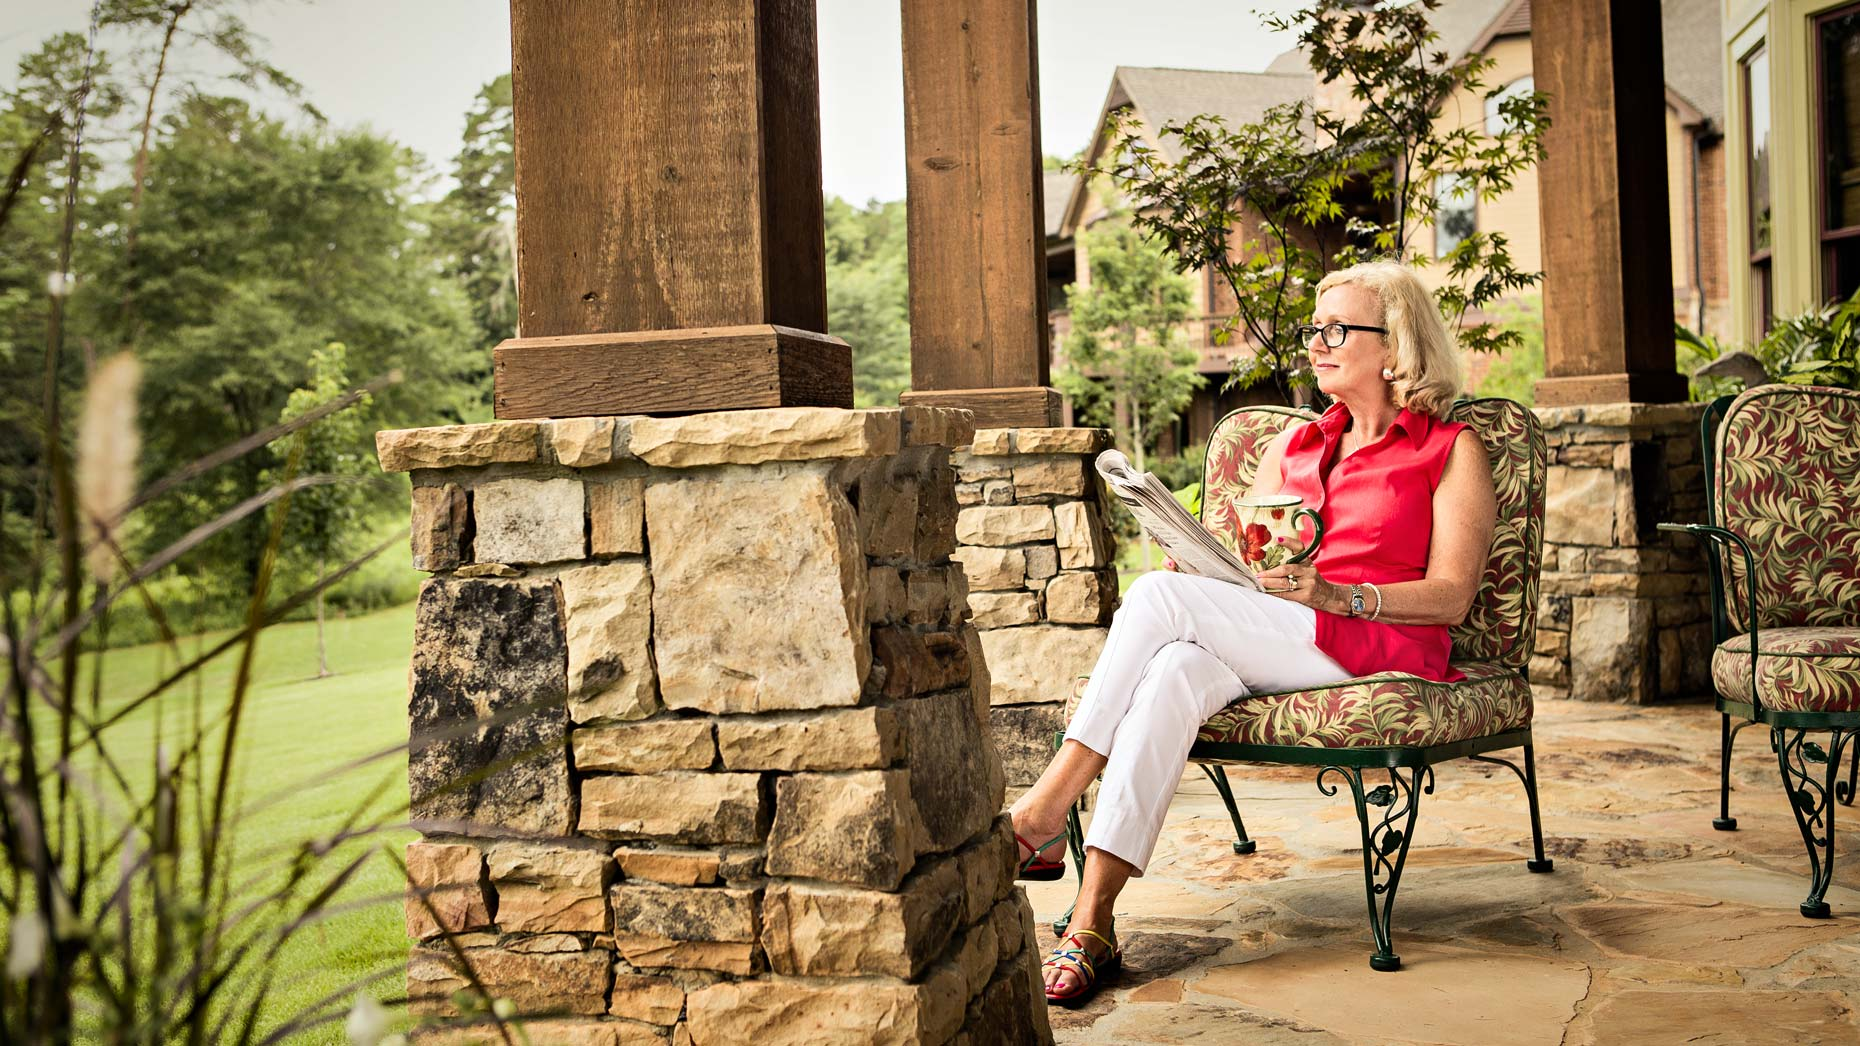 Senior woman sits on her patio looking out at garden, Atlanta